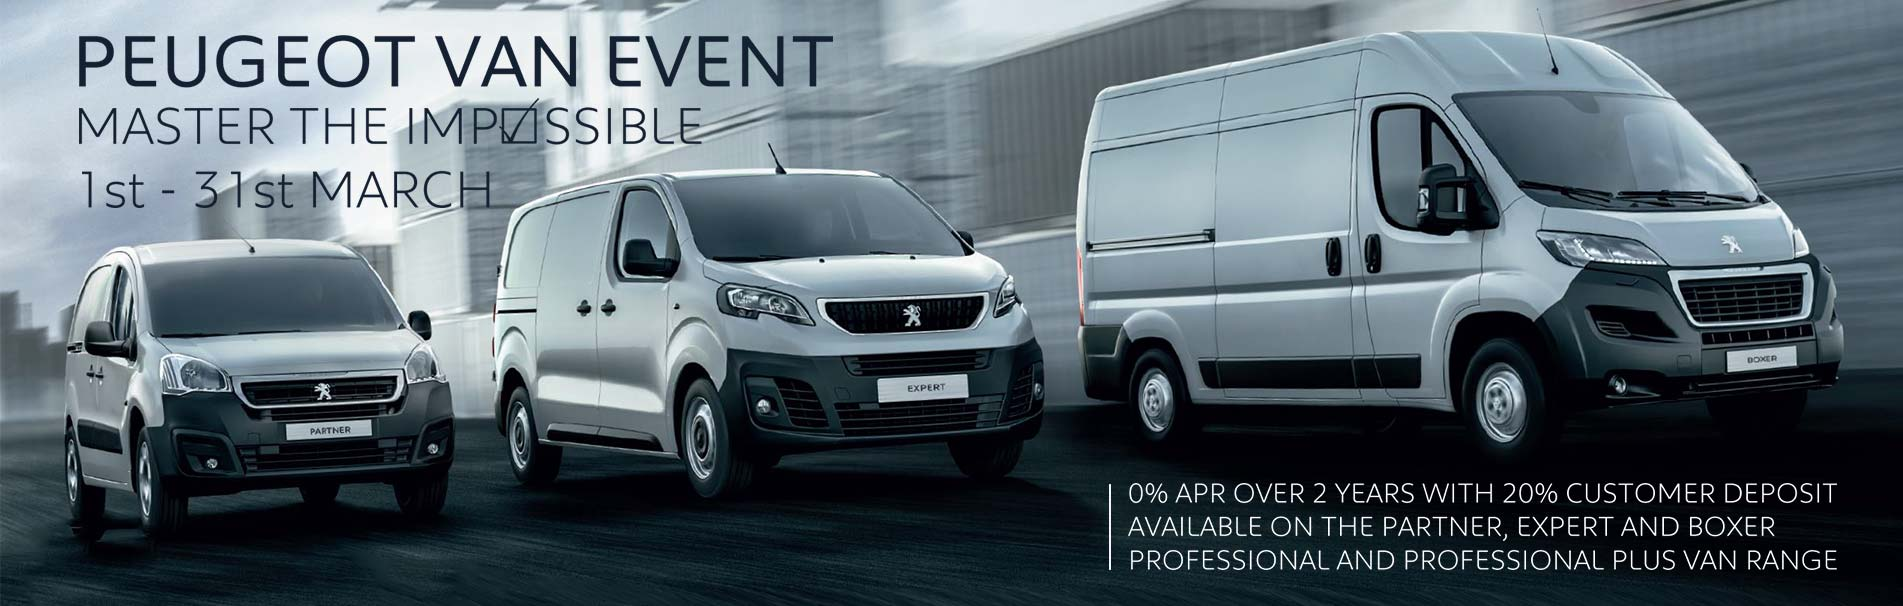 peugeot-van-event-march-2019-zero-percent-finance-hampshire-sli